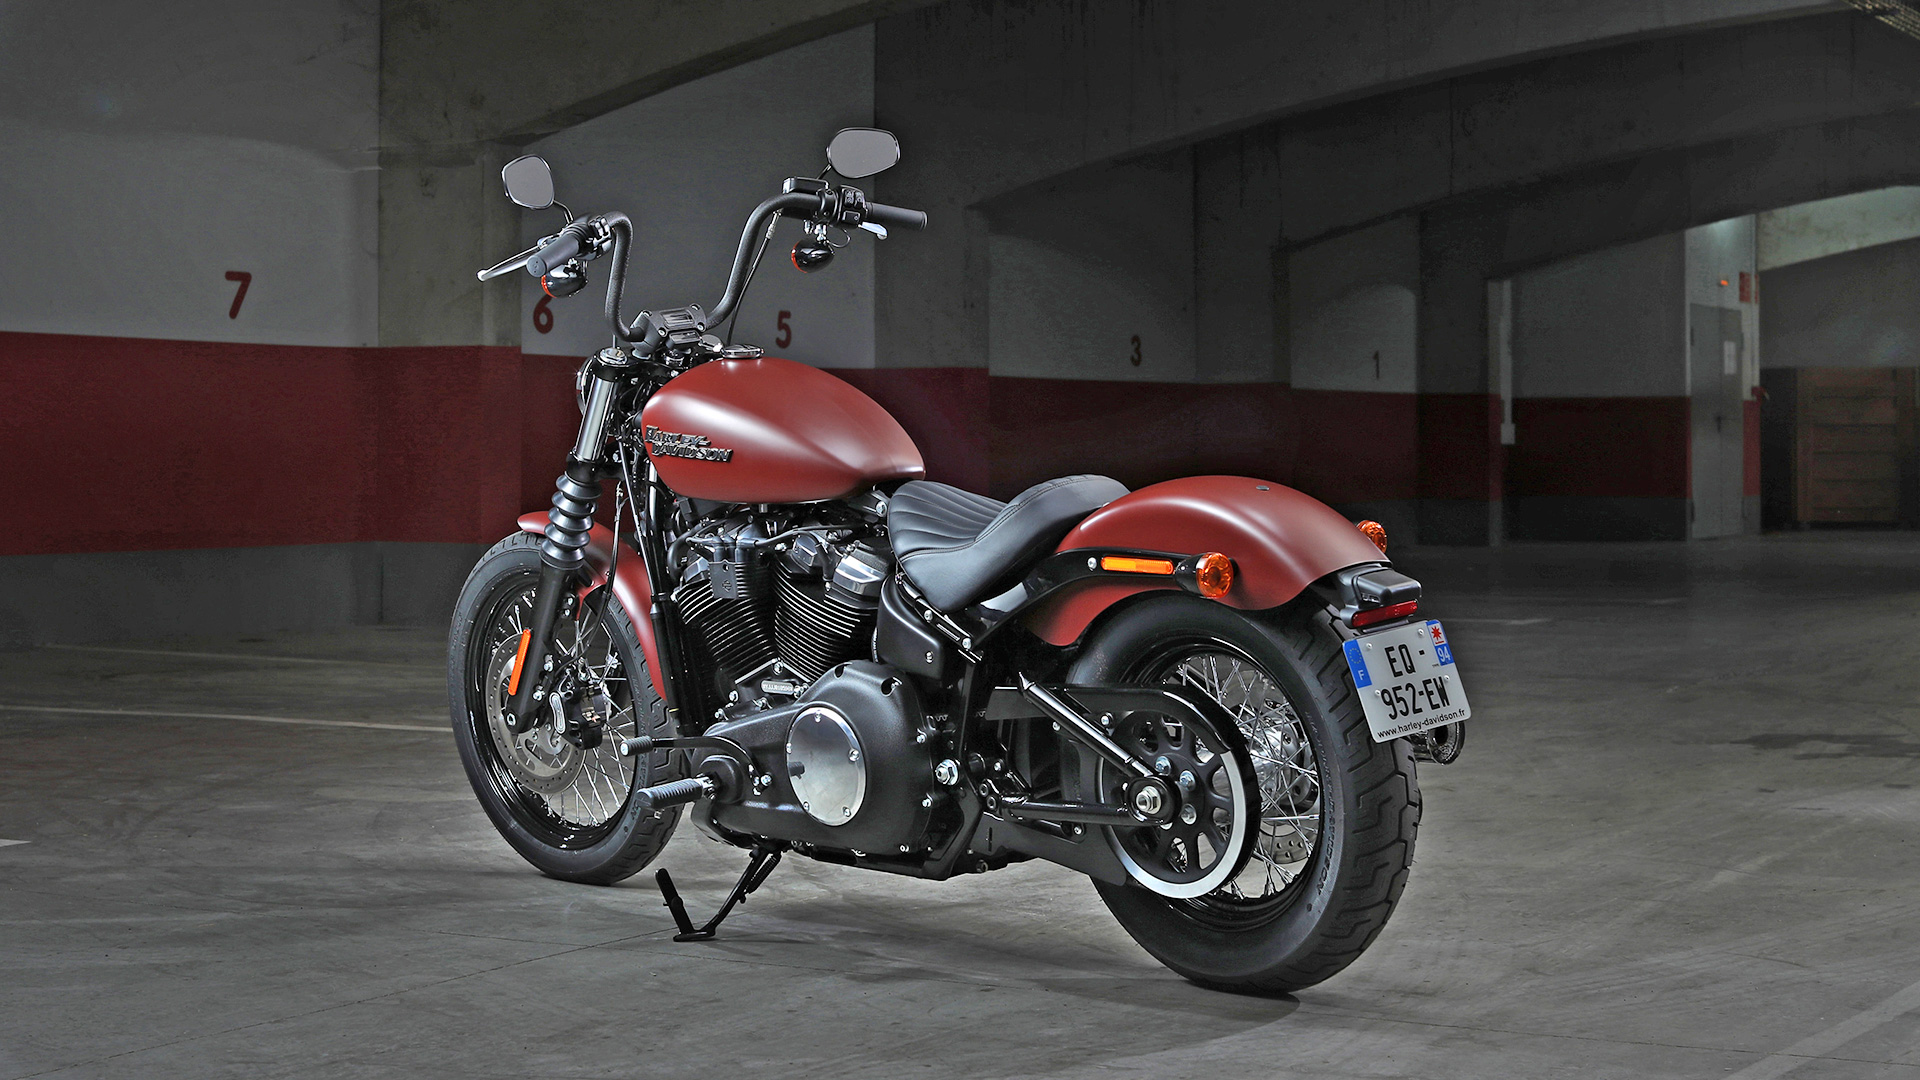 Street Bob M82 on review harley davidson street 750